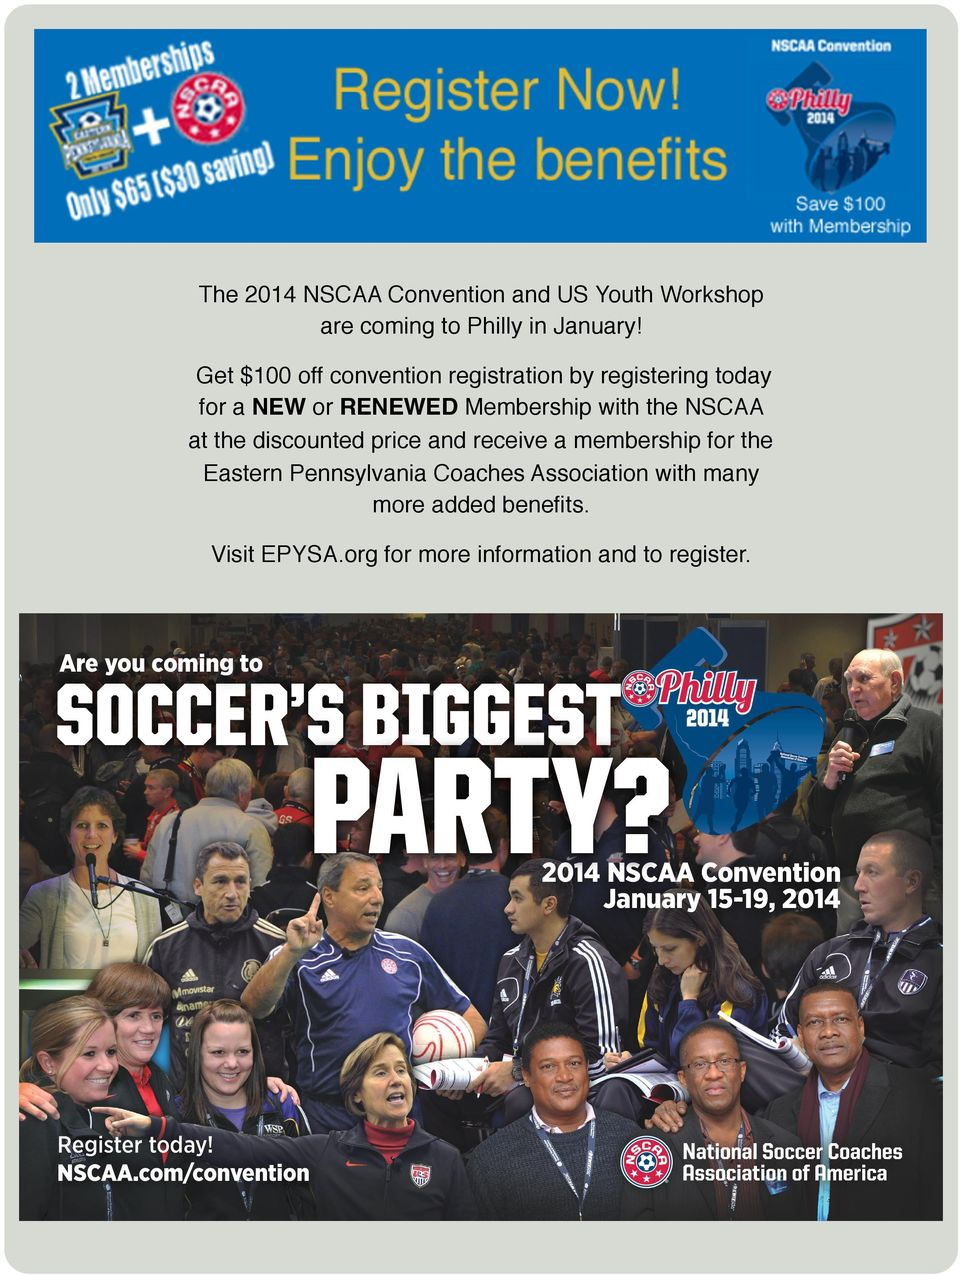 price and receive a membership for the Eastern Pennsylvania Coaches Association with many more added benefits. Visit EPYSA.